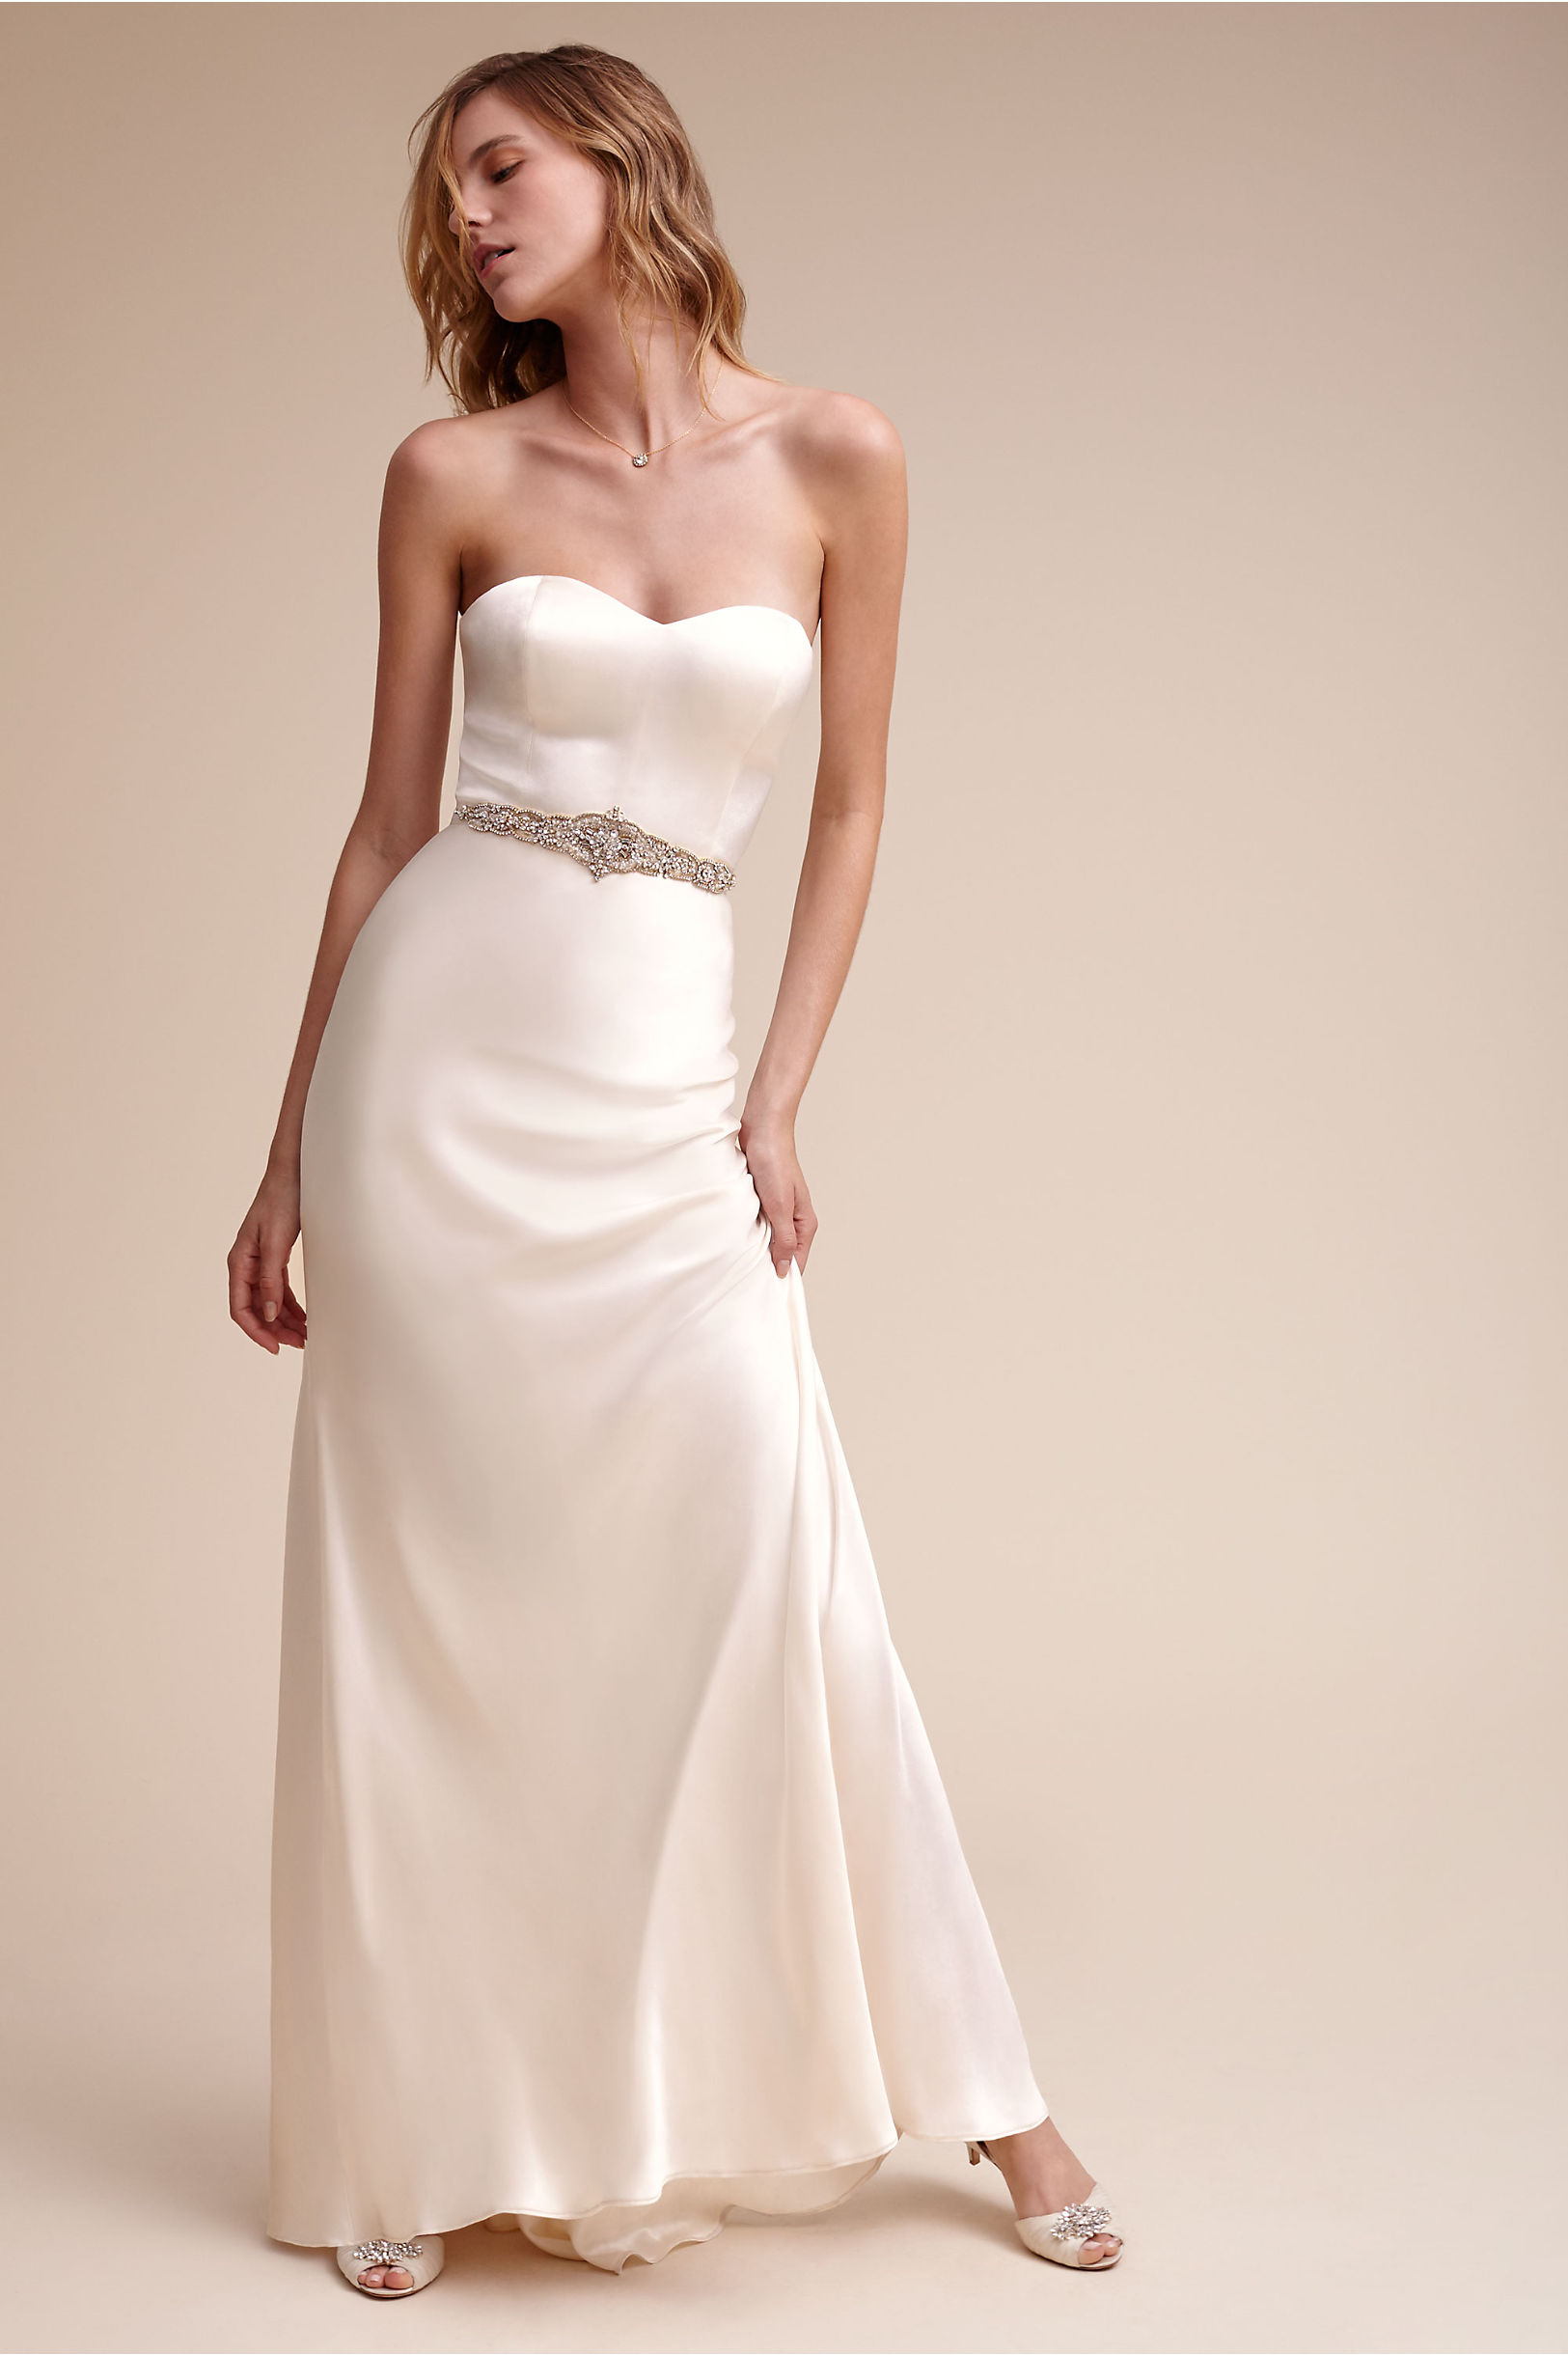 Gina Gown $1050